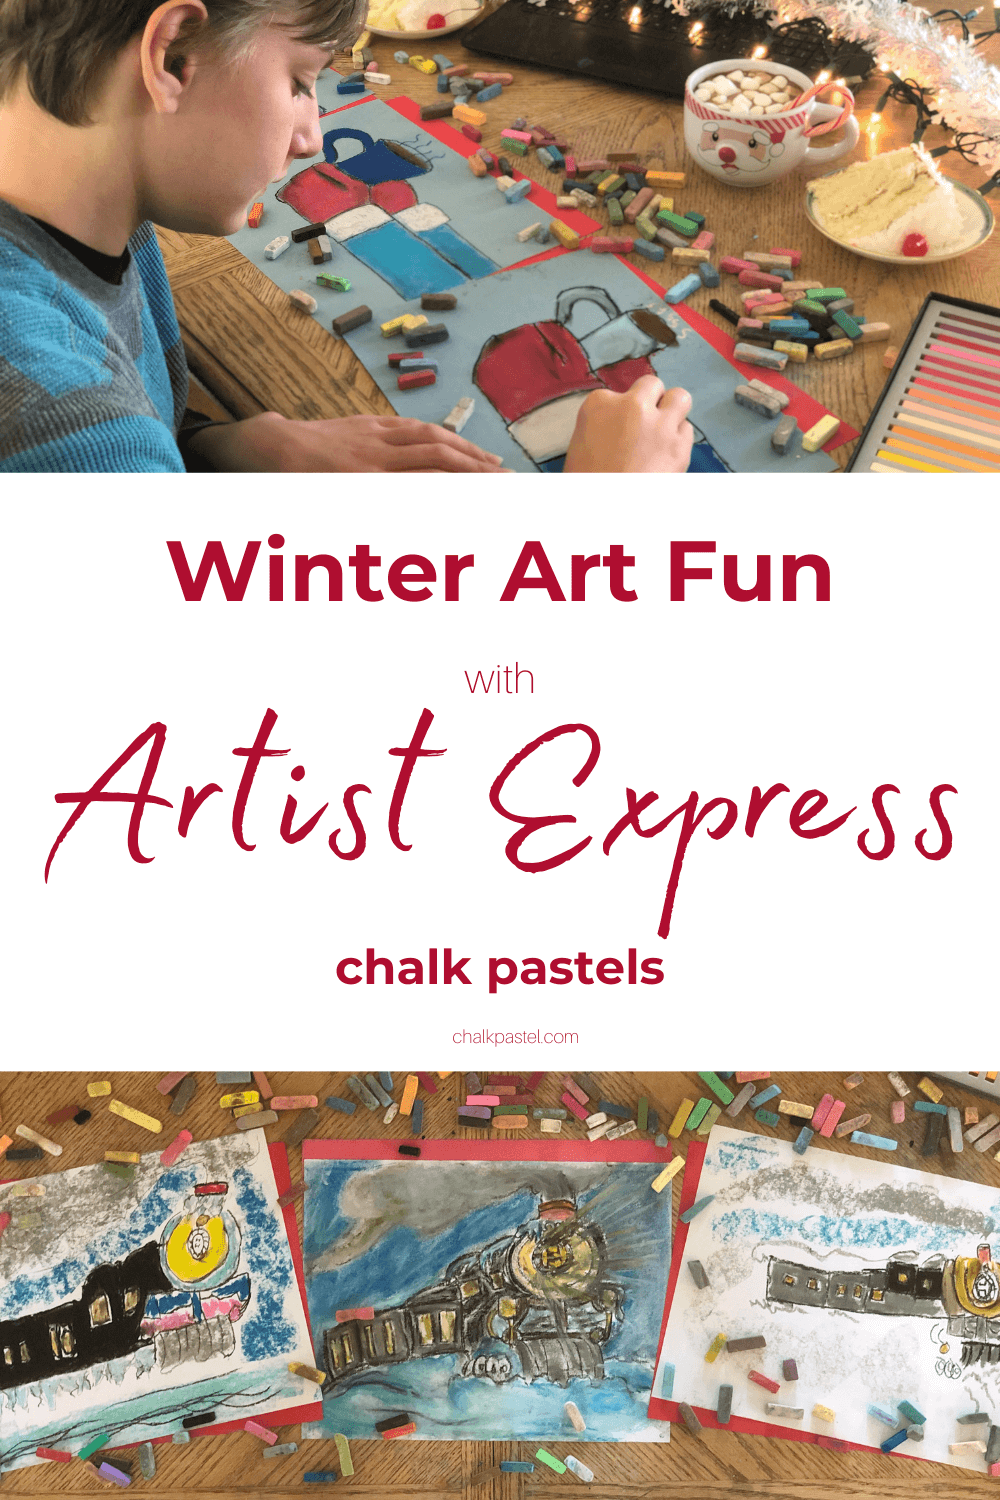 Winter Art Fun with Artist Express Chalk Pastels: Are you looking to add some cozy winter art fun for your kiddos this holiday season? Chalk Pastels are an easy way to help kids get creative! #homeschool #homeschooling #chalkpastels #winterart #winterartfun #